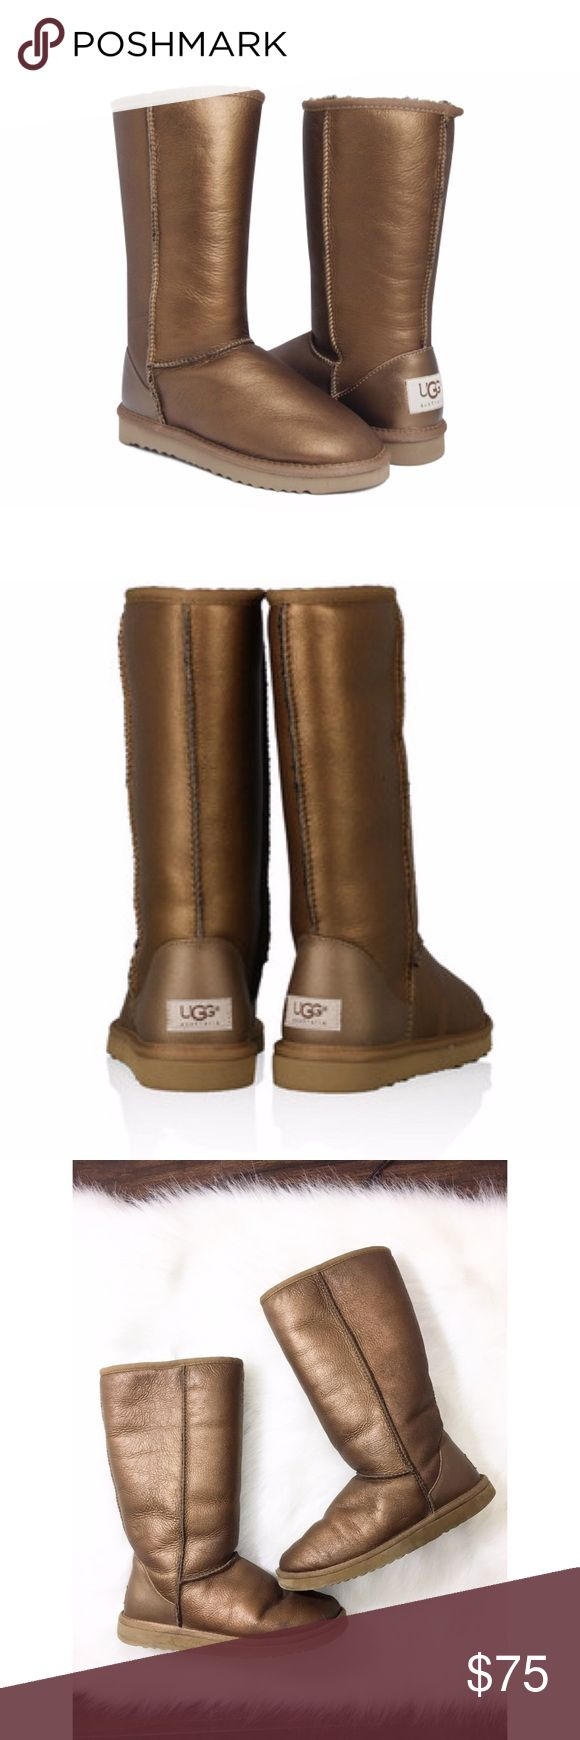 🌿Ugg classic tall bronze metallic Excellent condition, no flaws, rips, etc. The tag says 7w. No trades. I ship same or next day! ❤ UGG Shoes Winter & Rain Boots